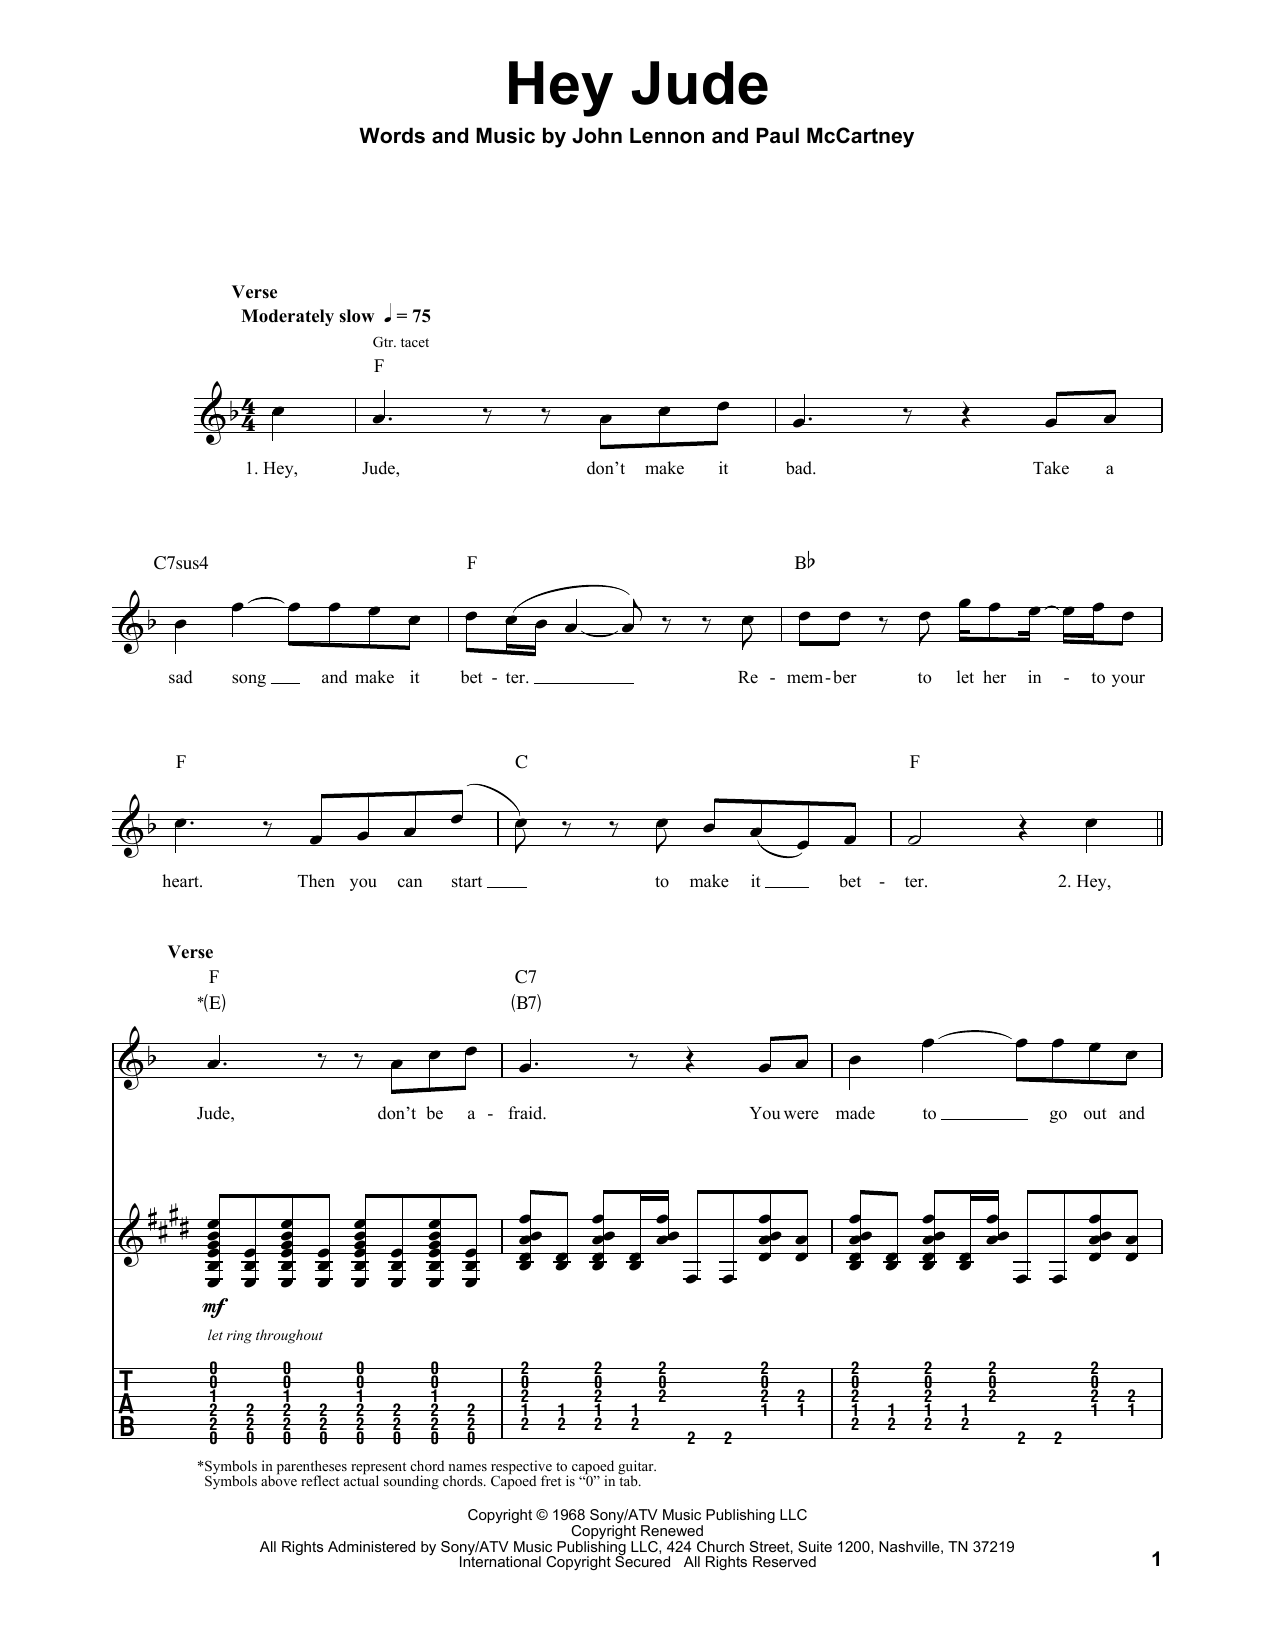 Hey Jude : Sheet Music Direct